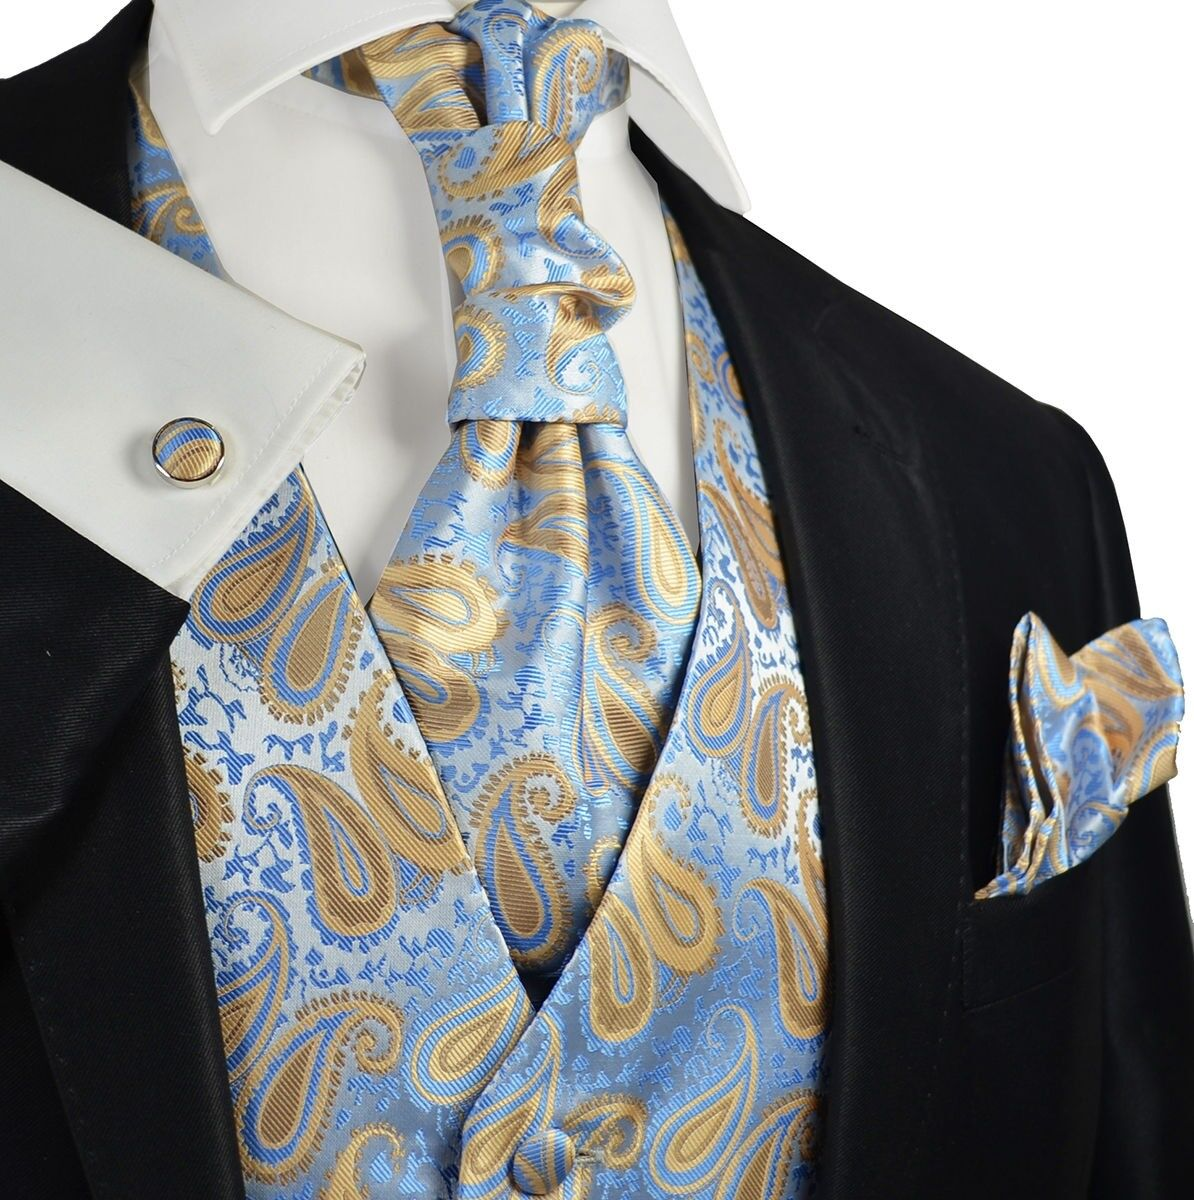 Alaskan bluee Paisley Tuxedo Vest, Tie and Accessories by Paul Malone